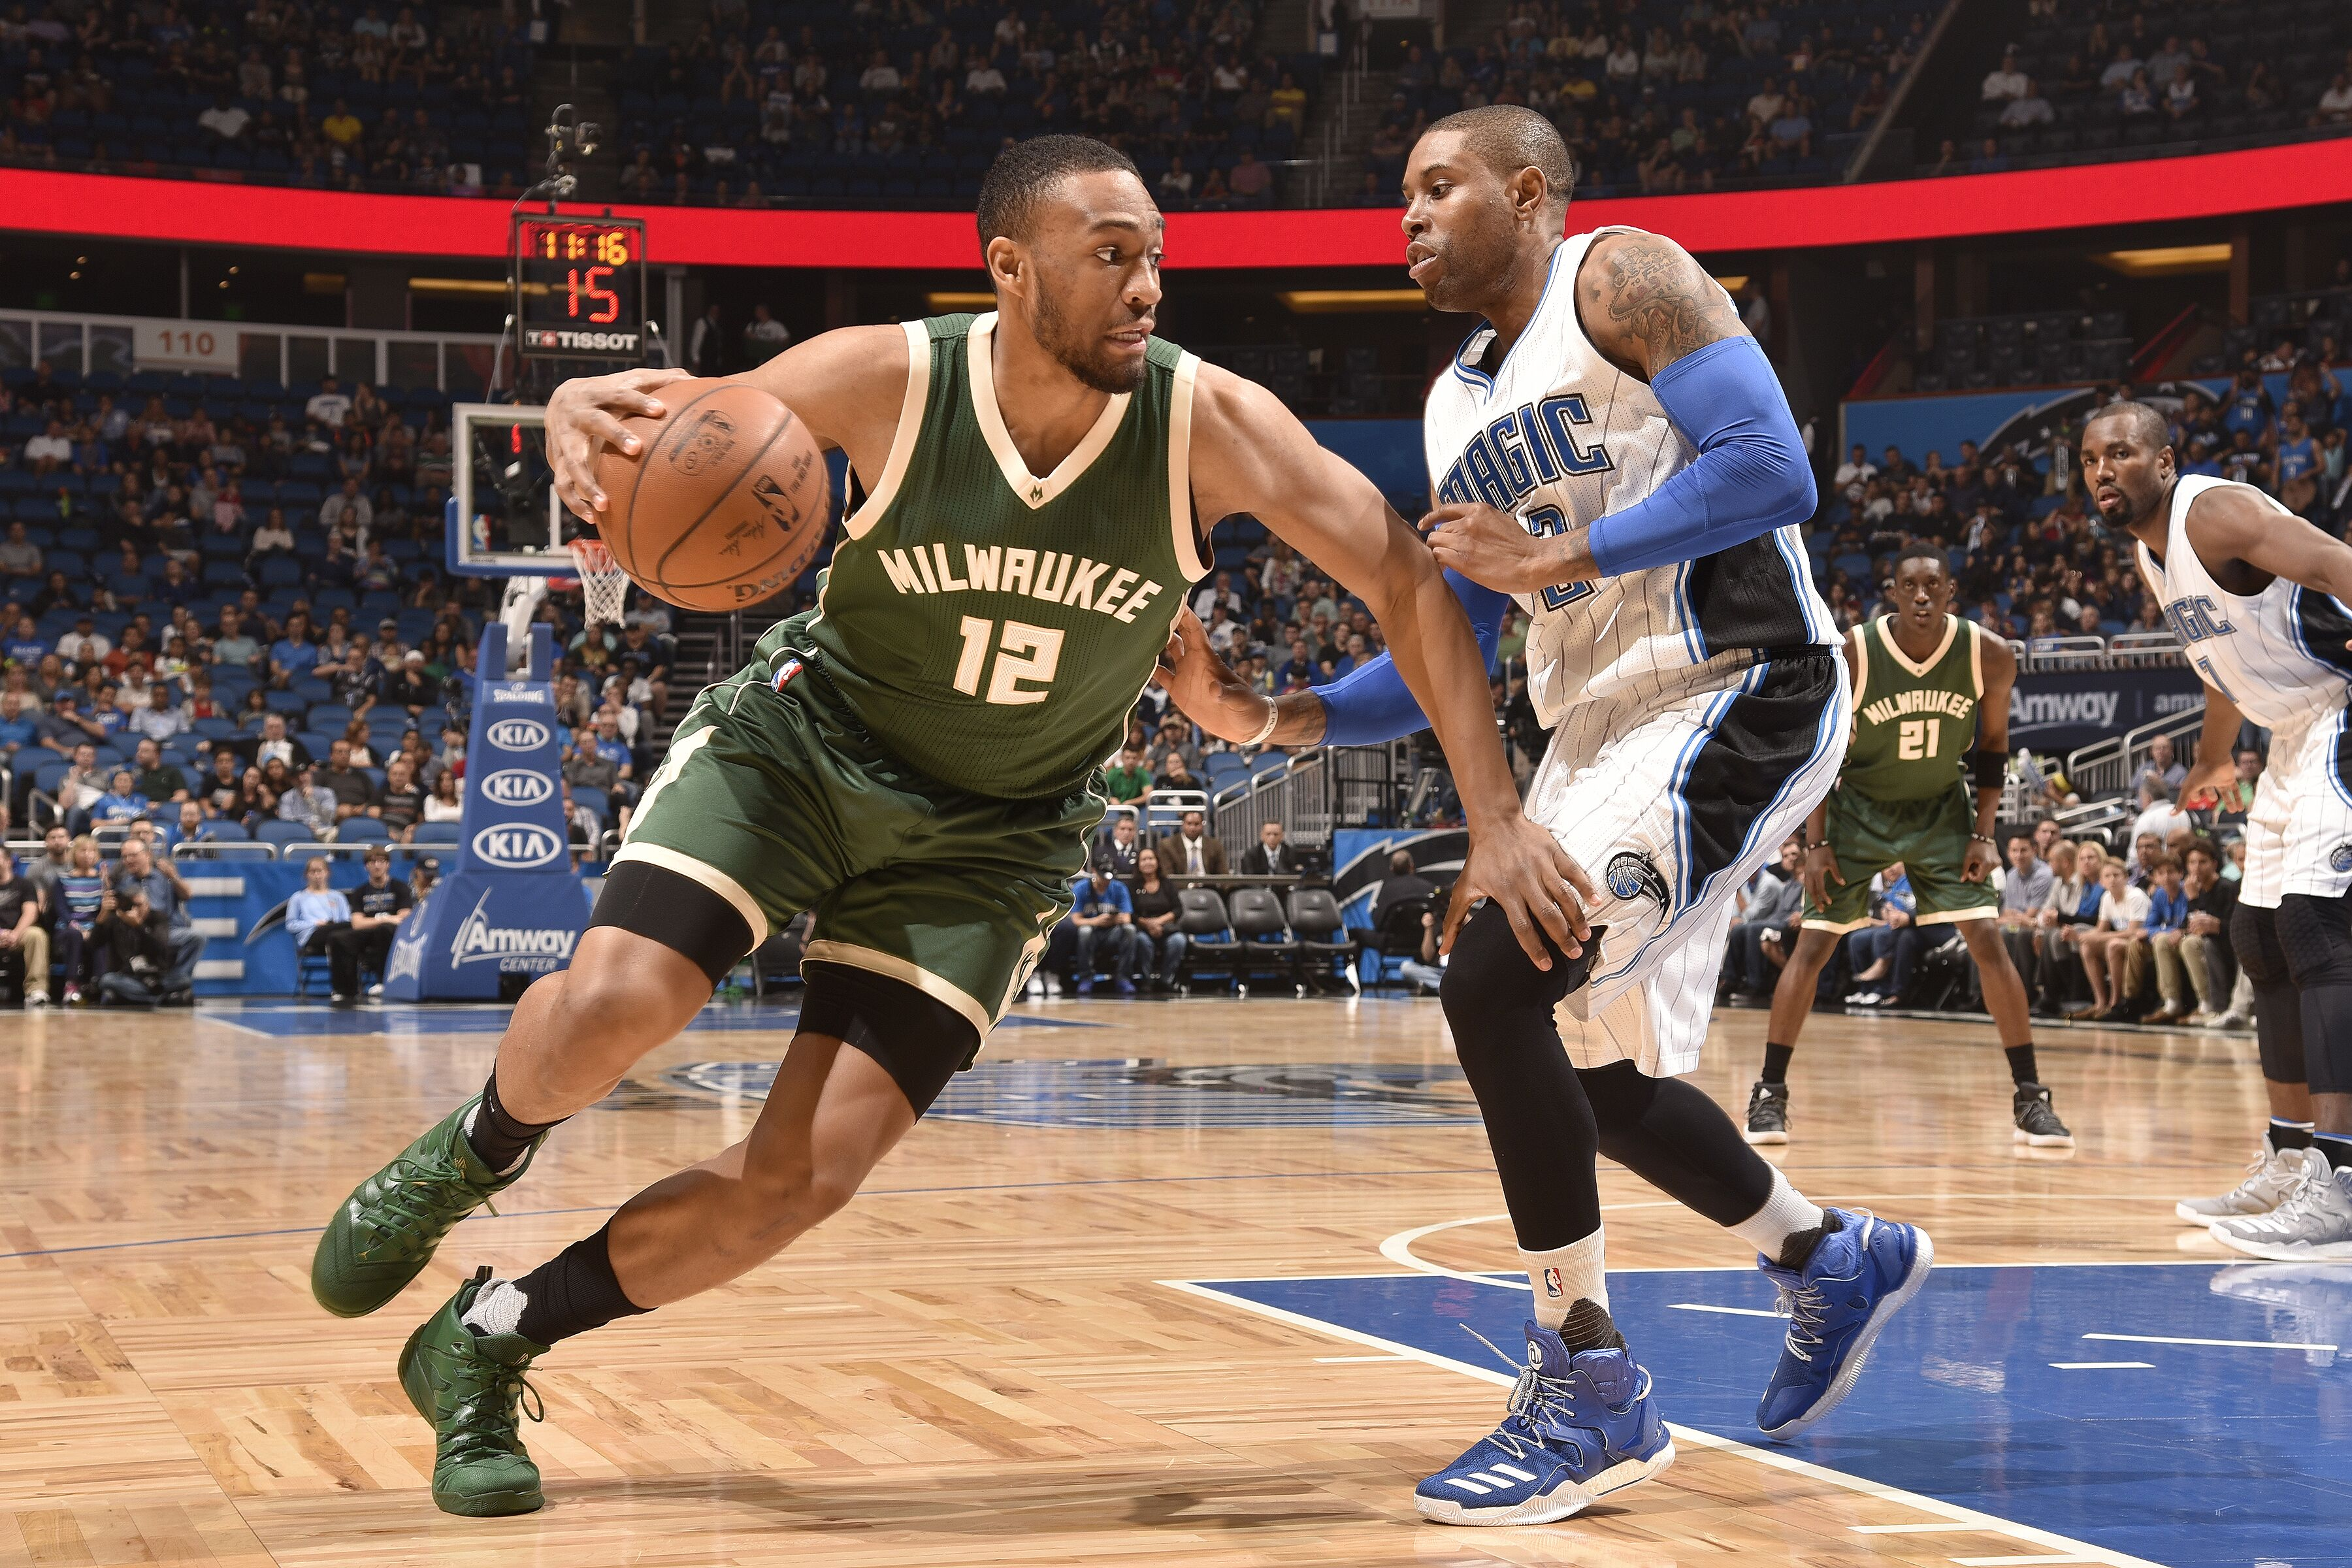 632260734-milwaukee-bucks-v-orlando-magic.jpg